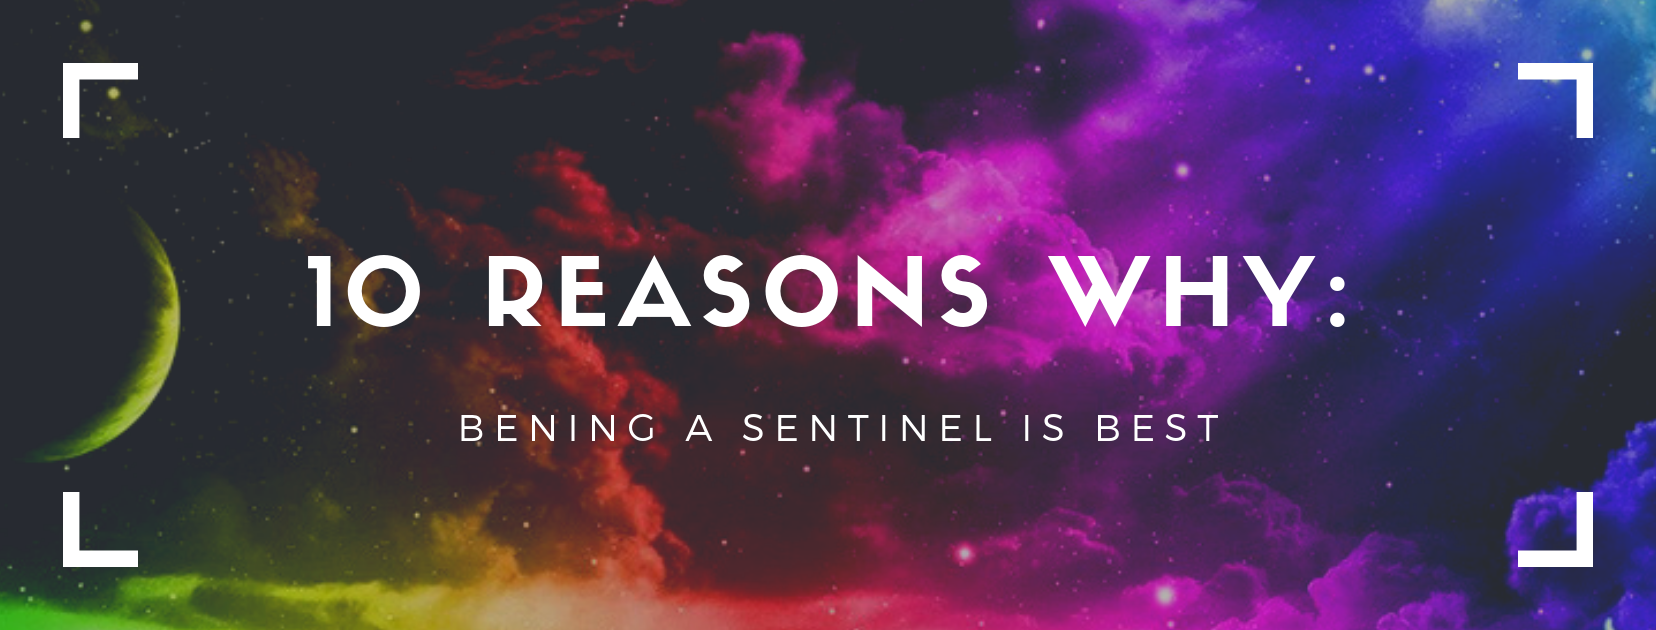 10 Reasons why: Being a Sentinel is best